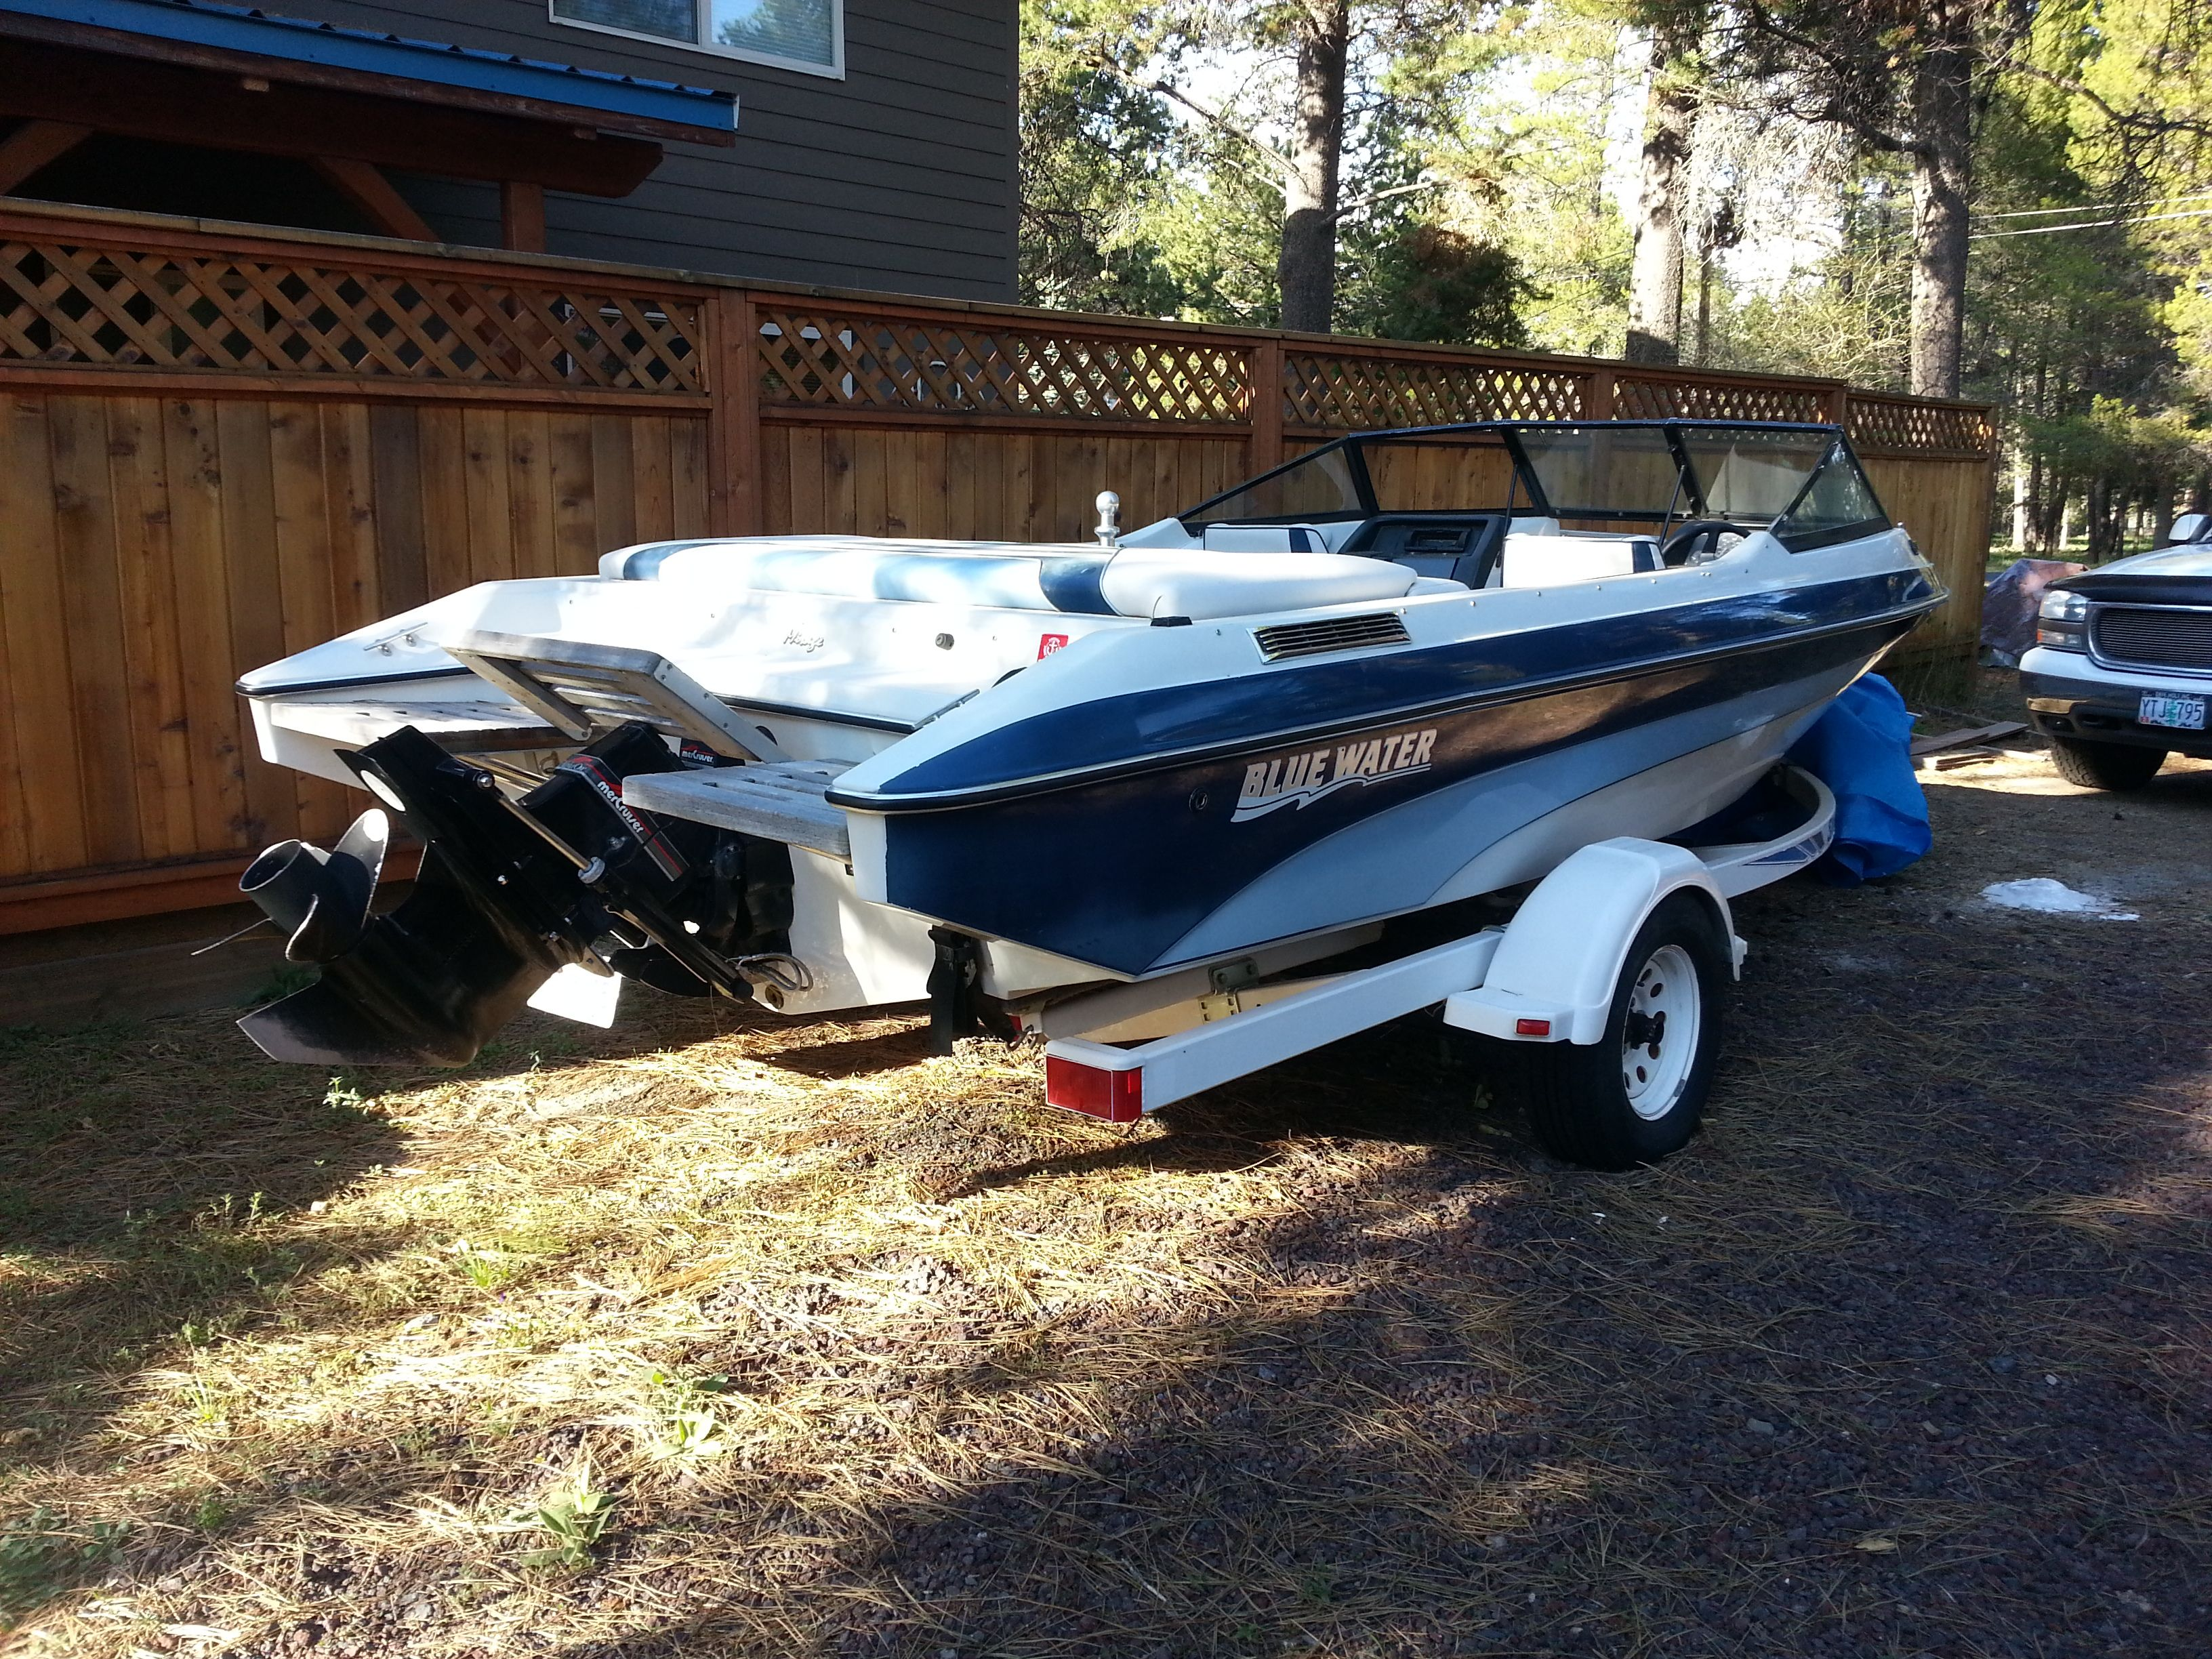 21 Ft Bluewater Mirage Boat Open Bow Swim Platform 4 3l Fuel Injected Mercruiser Engine With Less Than 100 Hrs On It On Ski Boats Family Ski Trip Bluewater